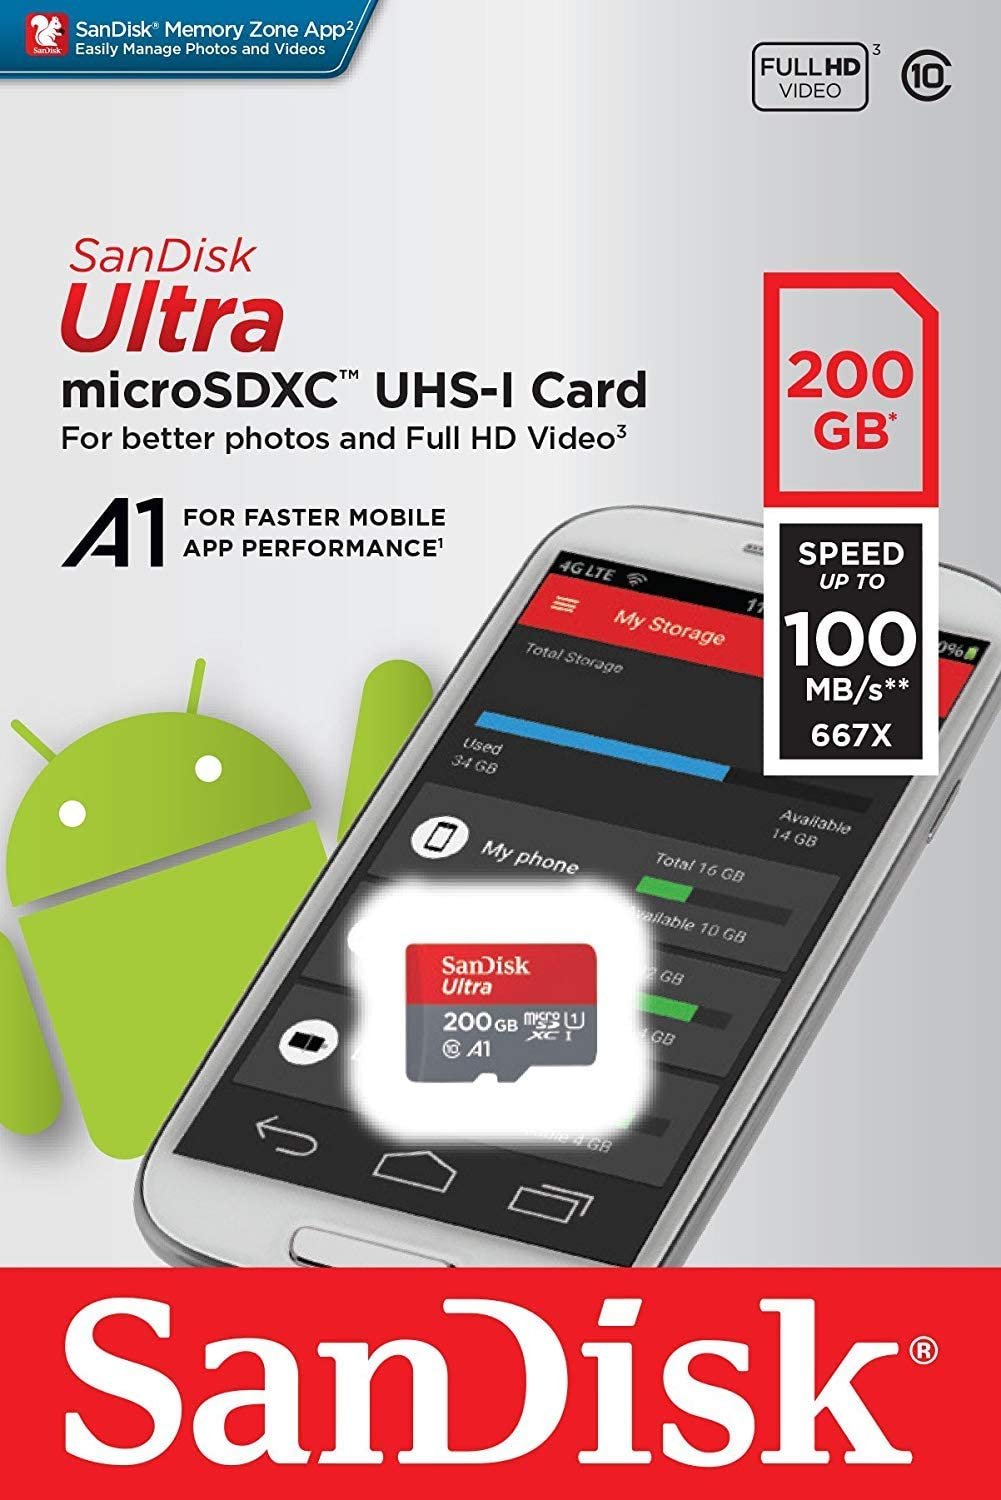 SanDisk Ultra 200GB MicroSDXC Verified for Karbonn Fashion Eye by SanFlash 100MBs A1 U1 C10 Works with SanDisk